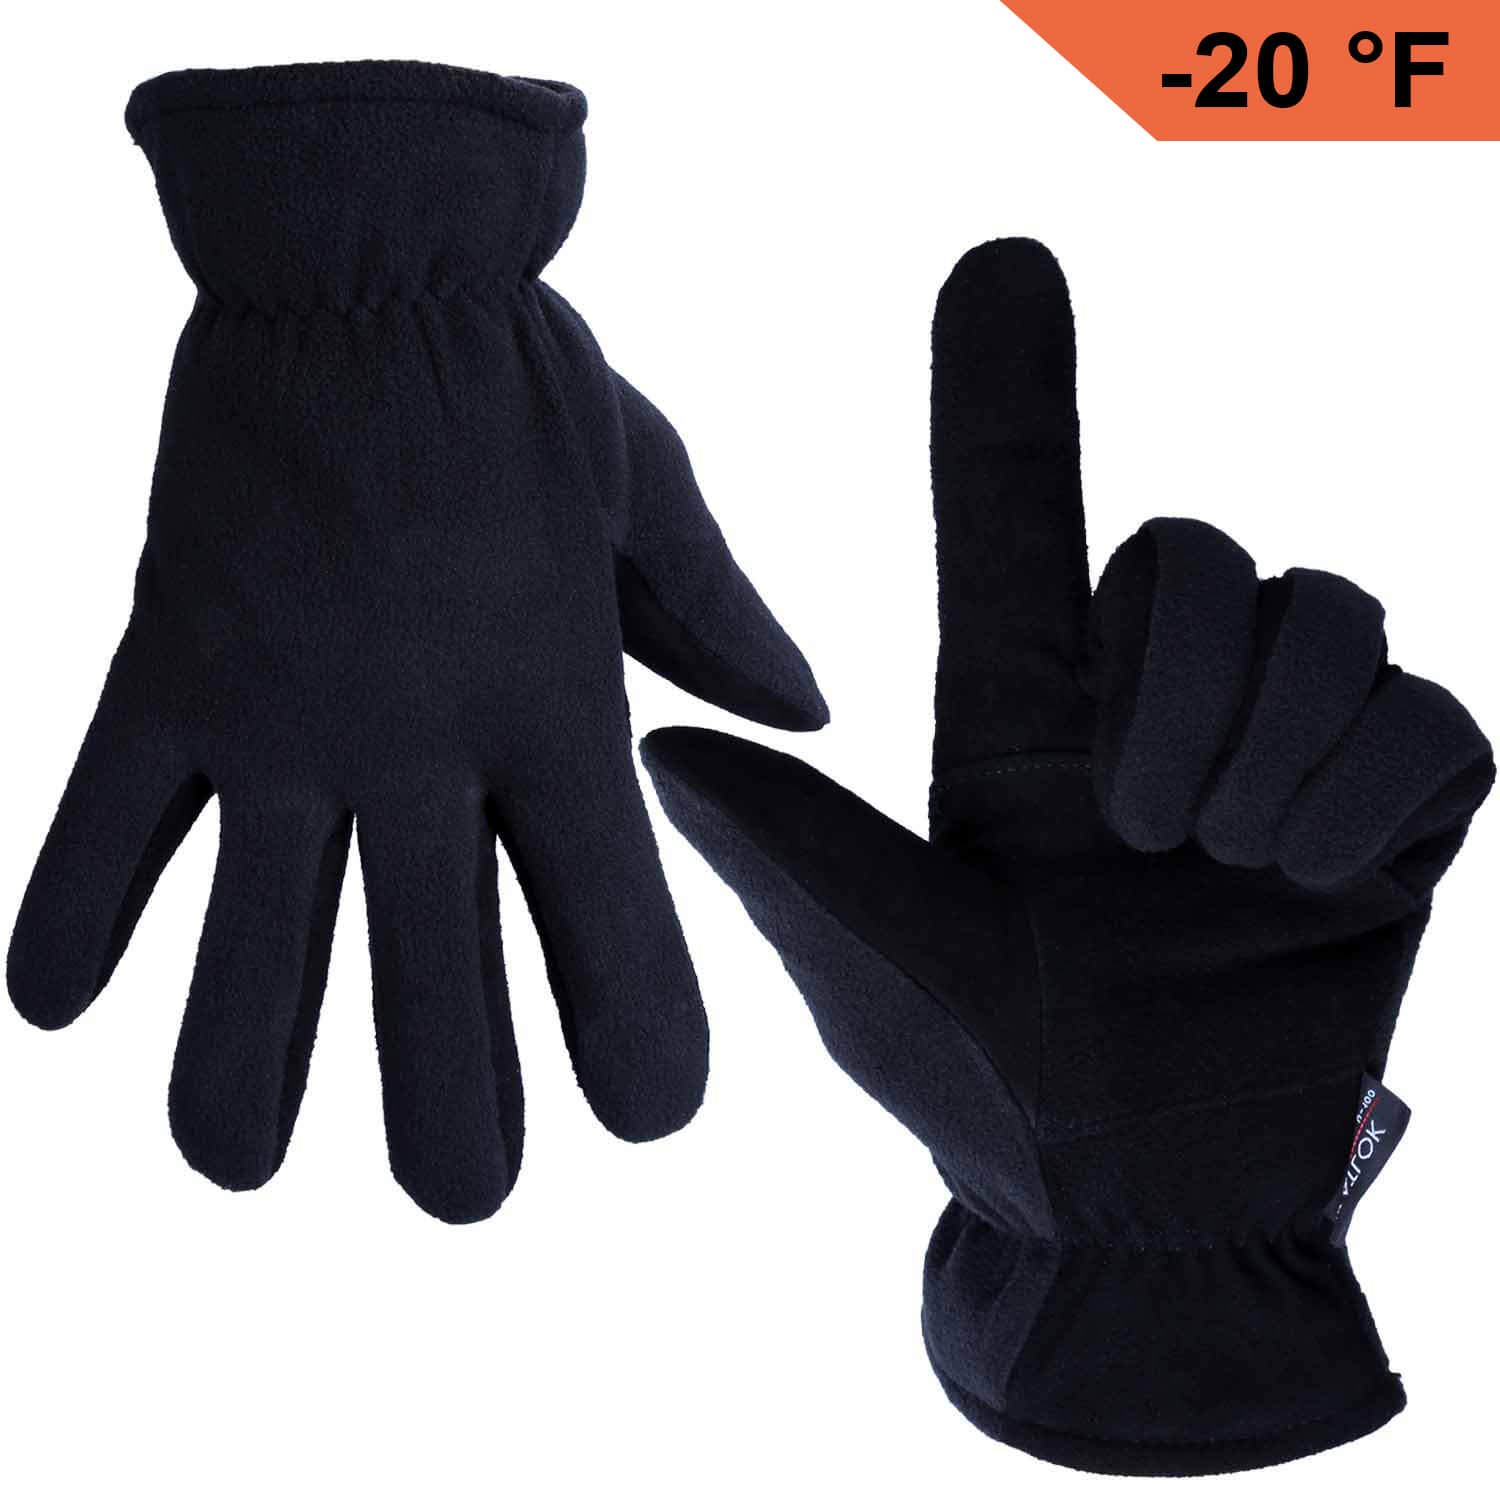 OZERO Deerskin Suede Leather Palm and Polar Fleece Back with Heatlok Insulated Cotton Layer Thermal Gloves, Medium - Denim-Black SHENZHEN HONGFUYA TRADE Co. Ltd FBA_WO-8007